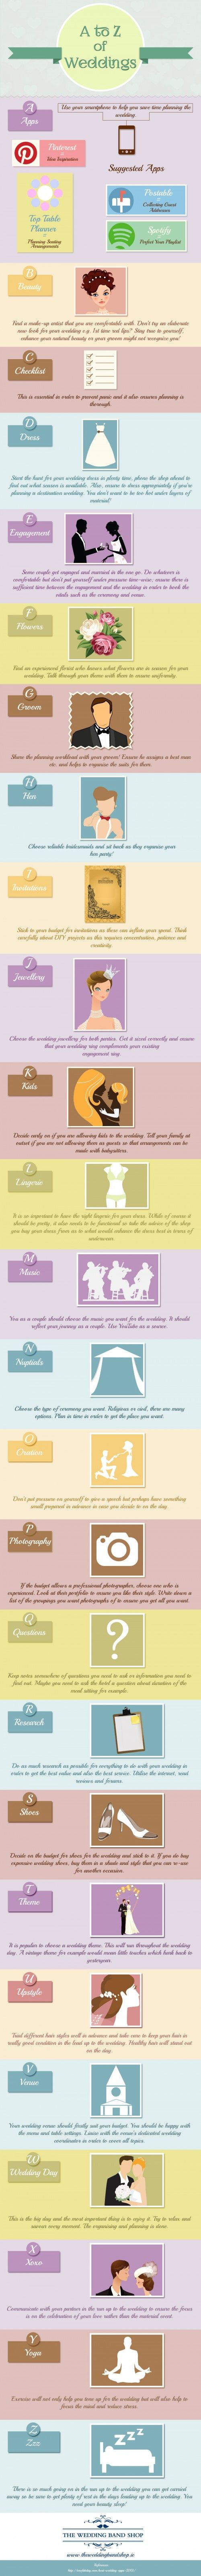 I can't stress enough how helpful this is! Lots of great tips to make your wedding less stressful :)